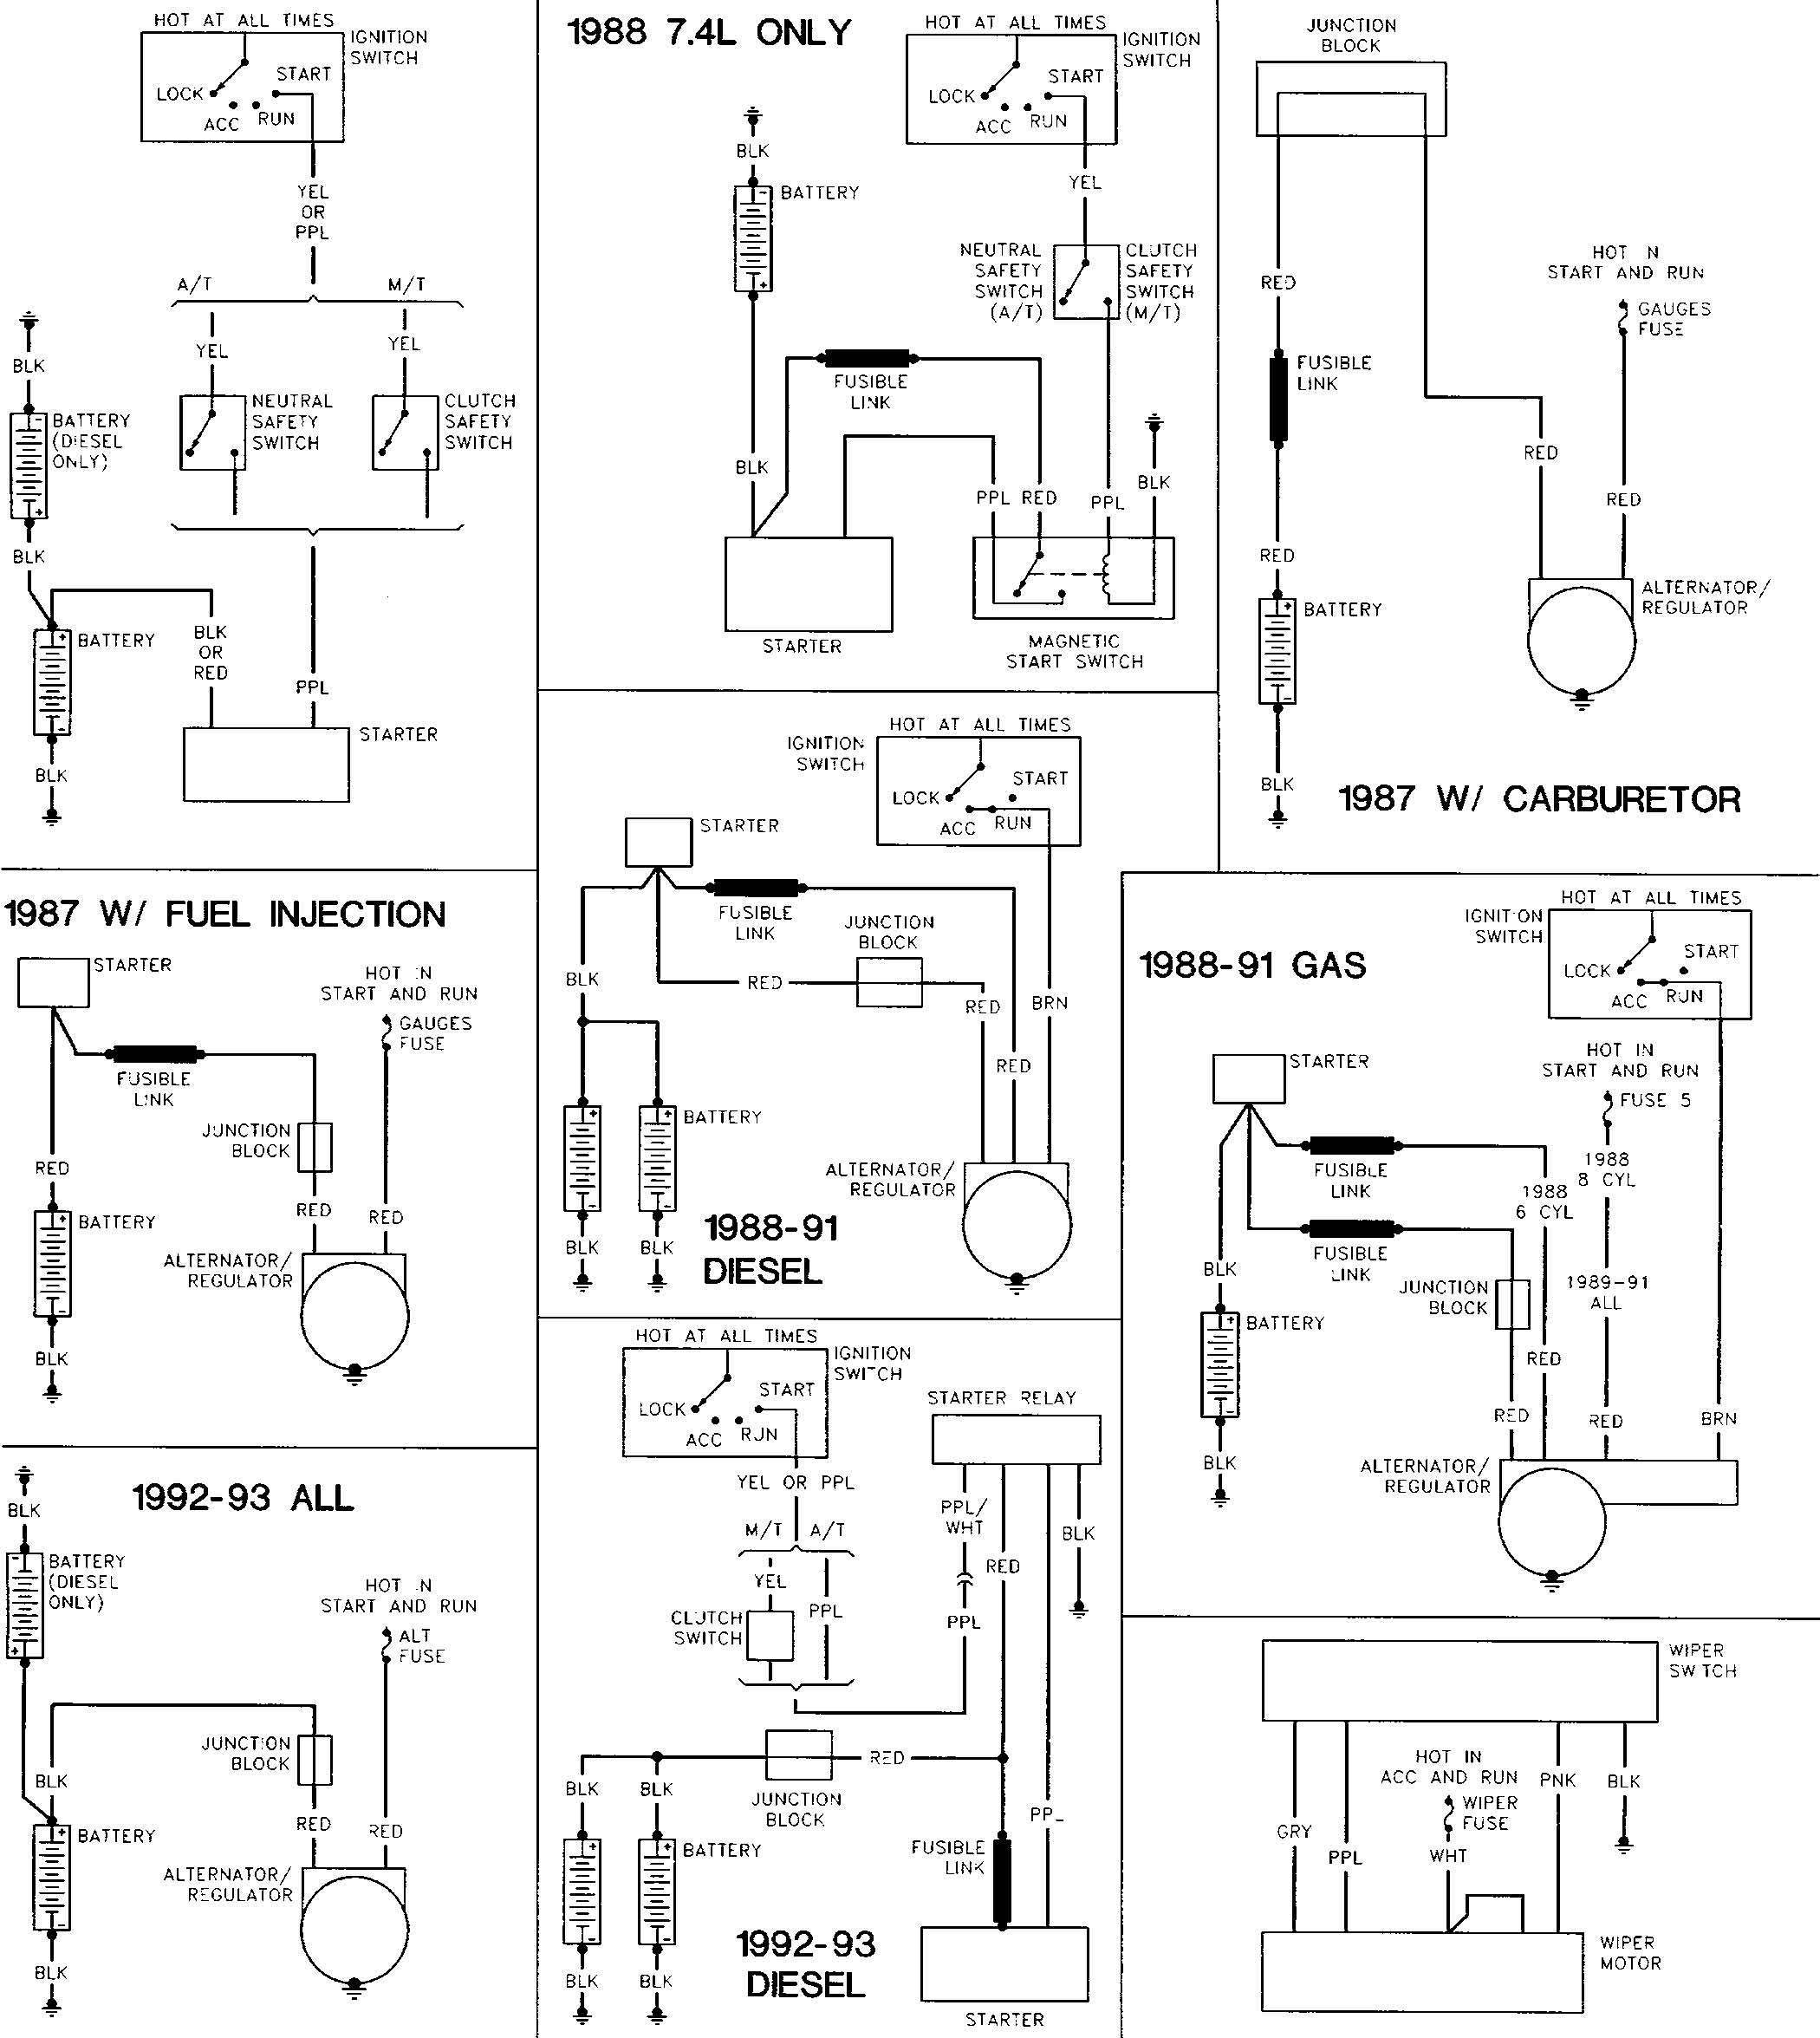 1984 airstream wiring diagram wiring diagram1984 airstream wiring diagram